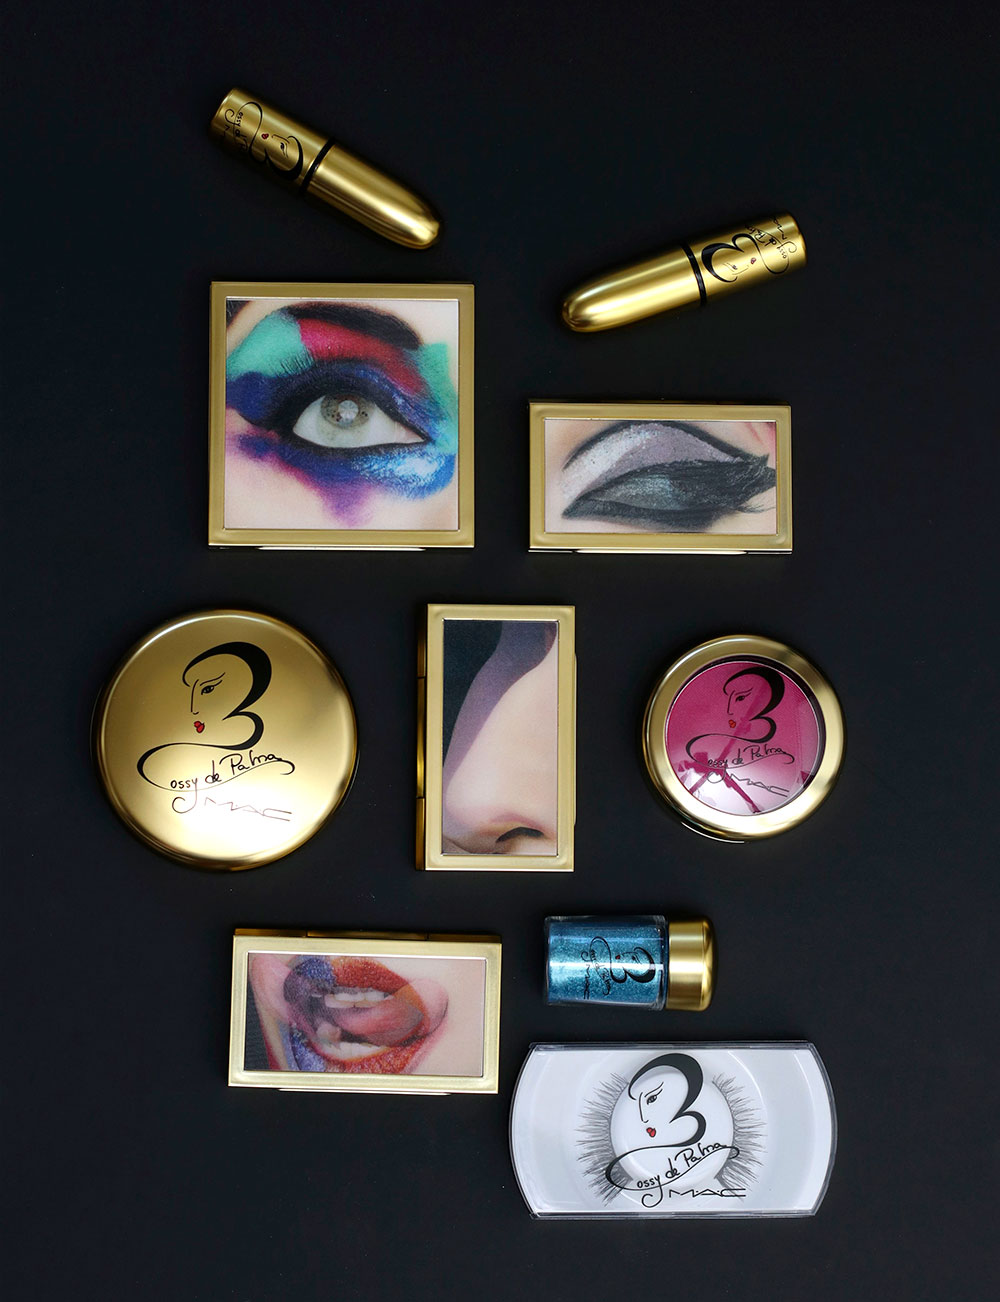 mac rossy de palma packaging 2